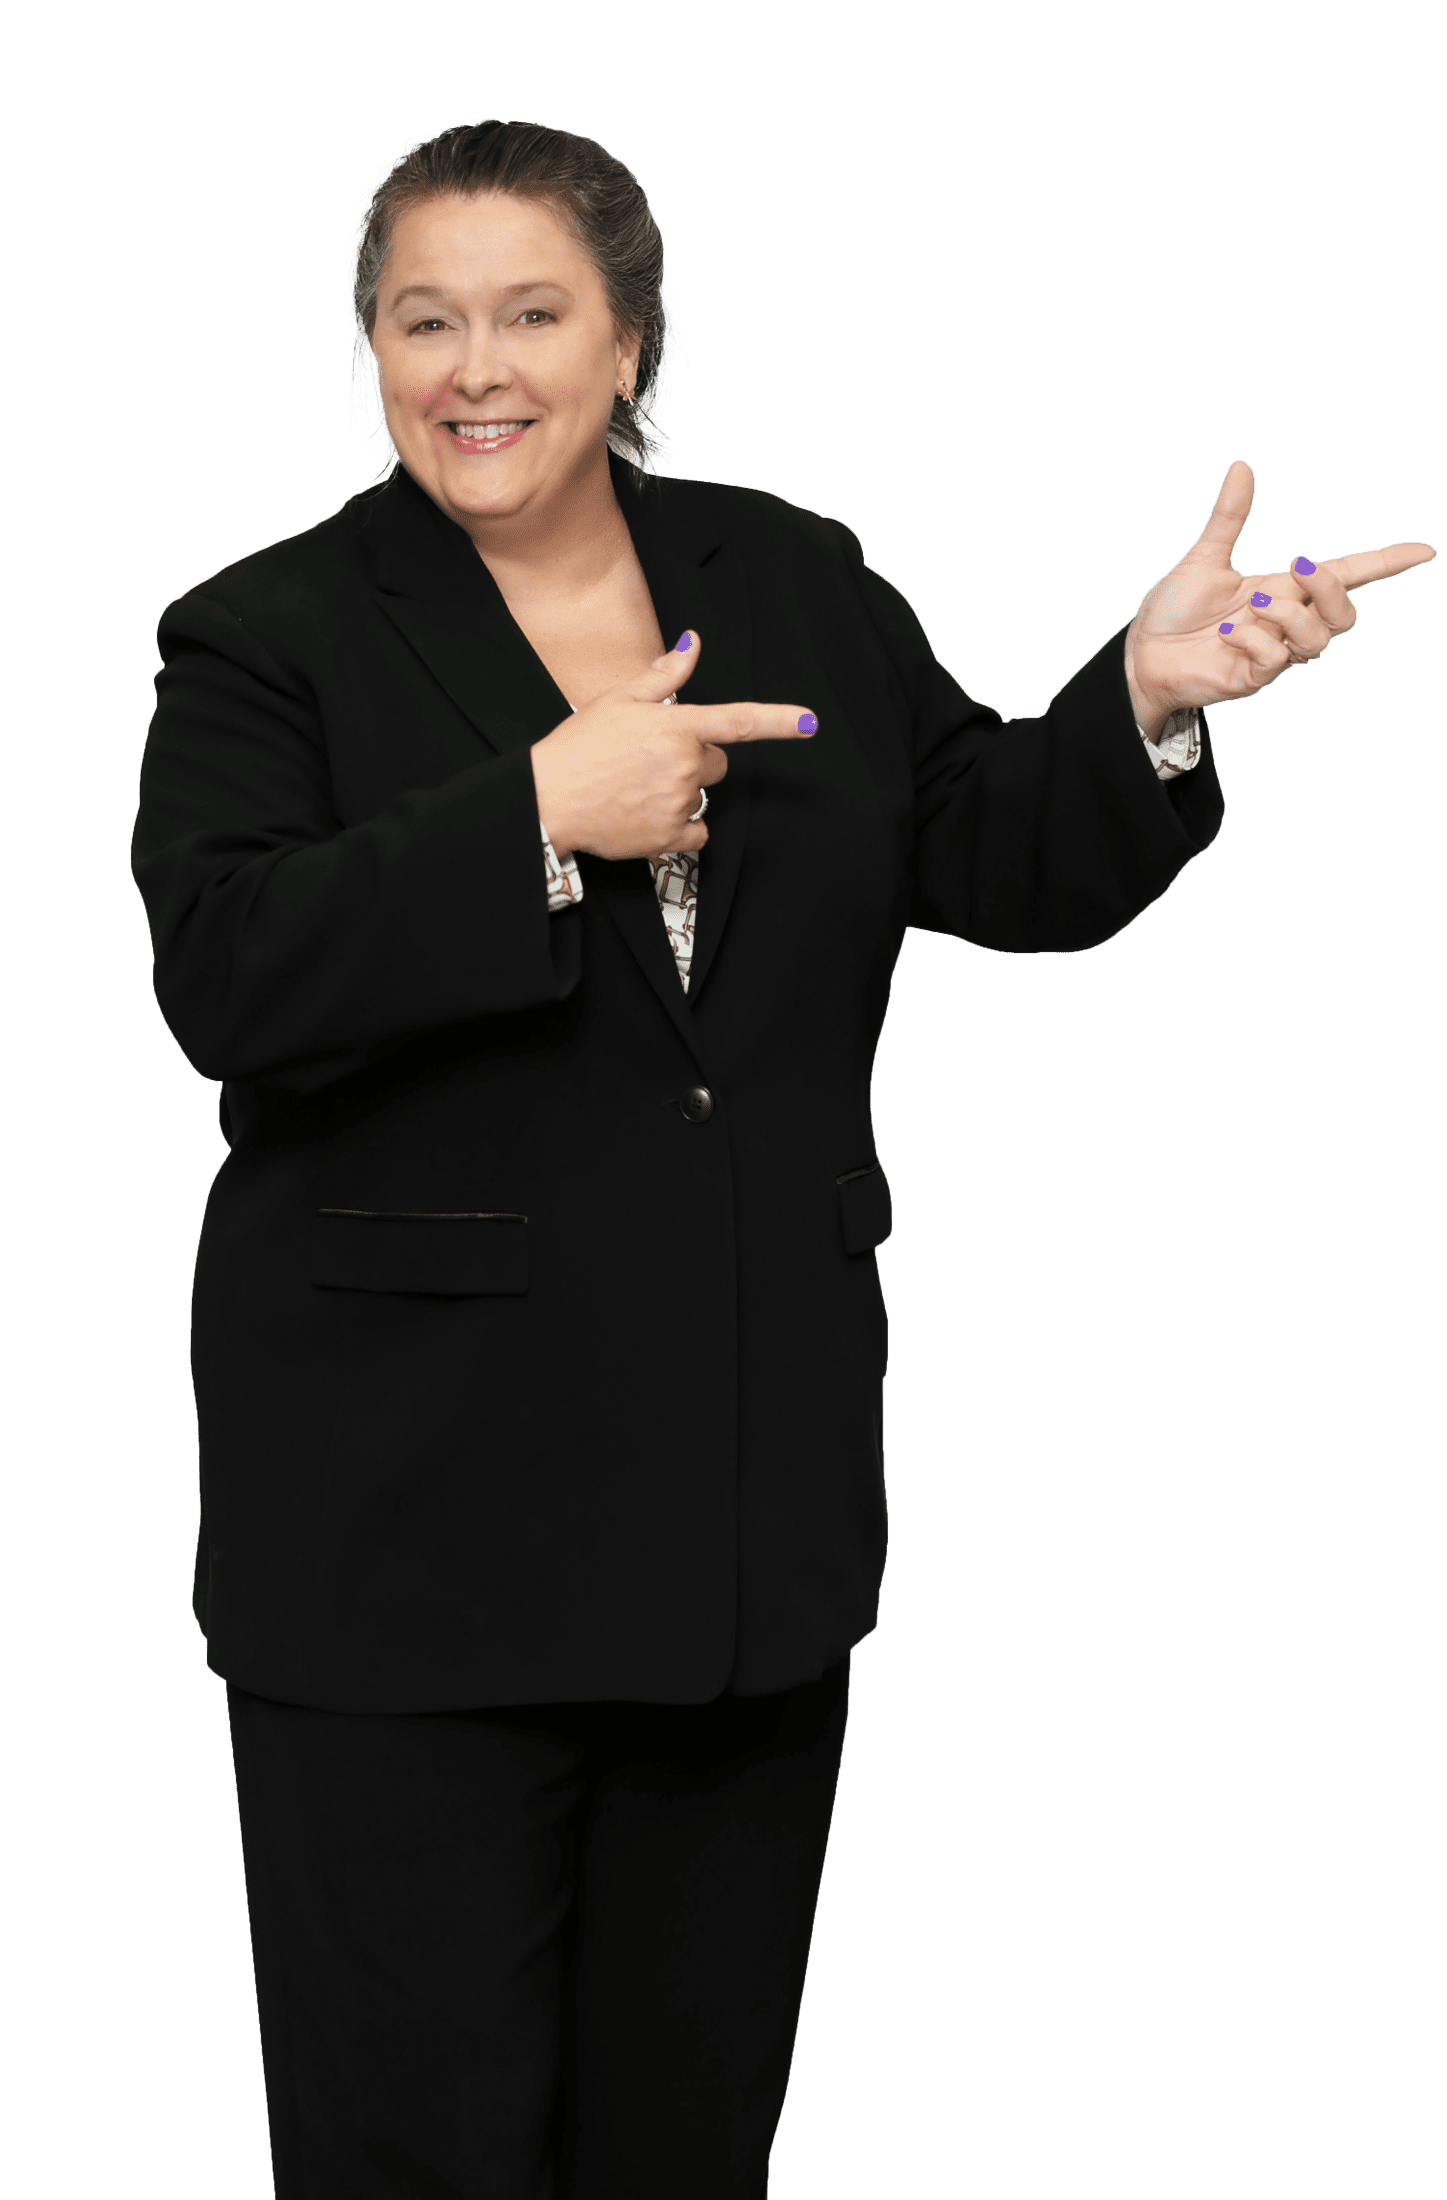 Picture of Sue Sutcliffe Standing and Pointing